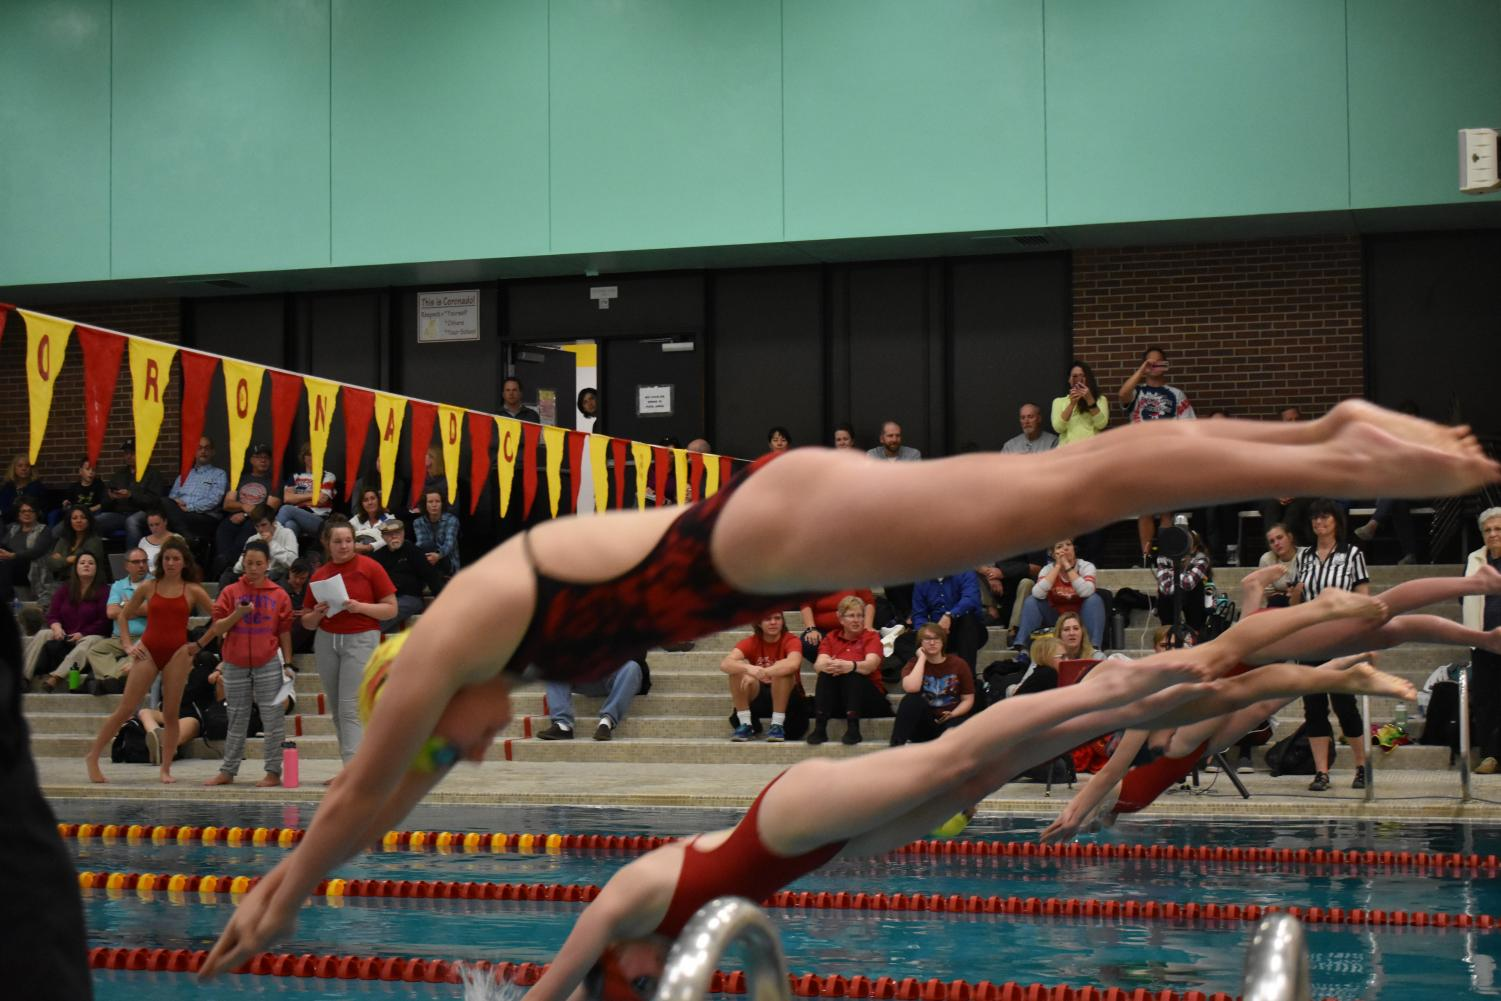 A Liberty swimmer and a Coronado swimmer dive off the blocks at the start of their race.